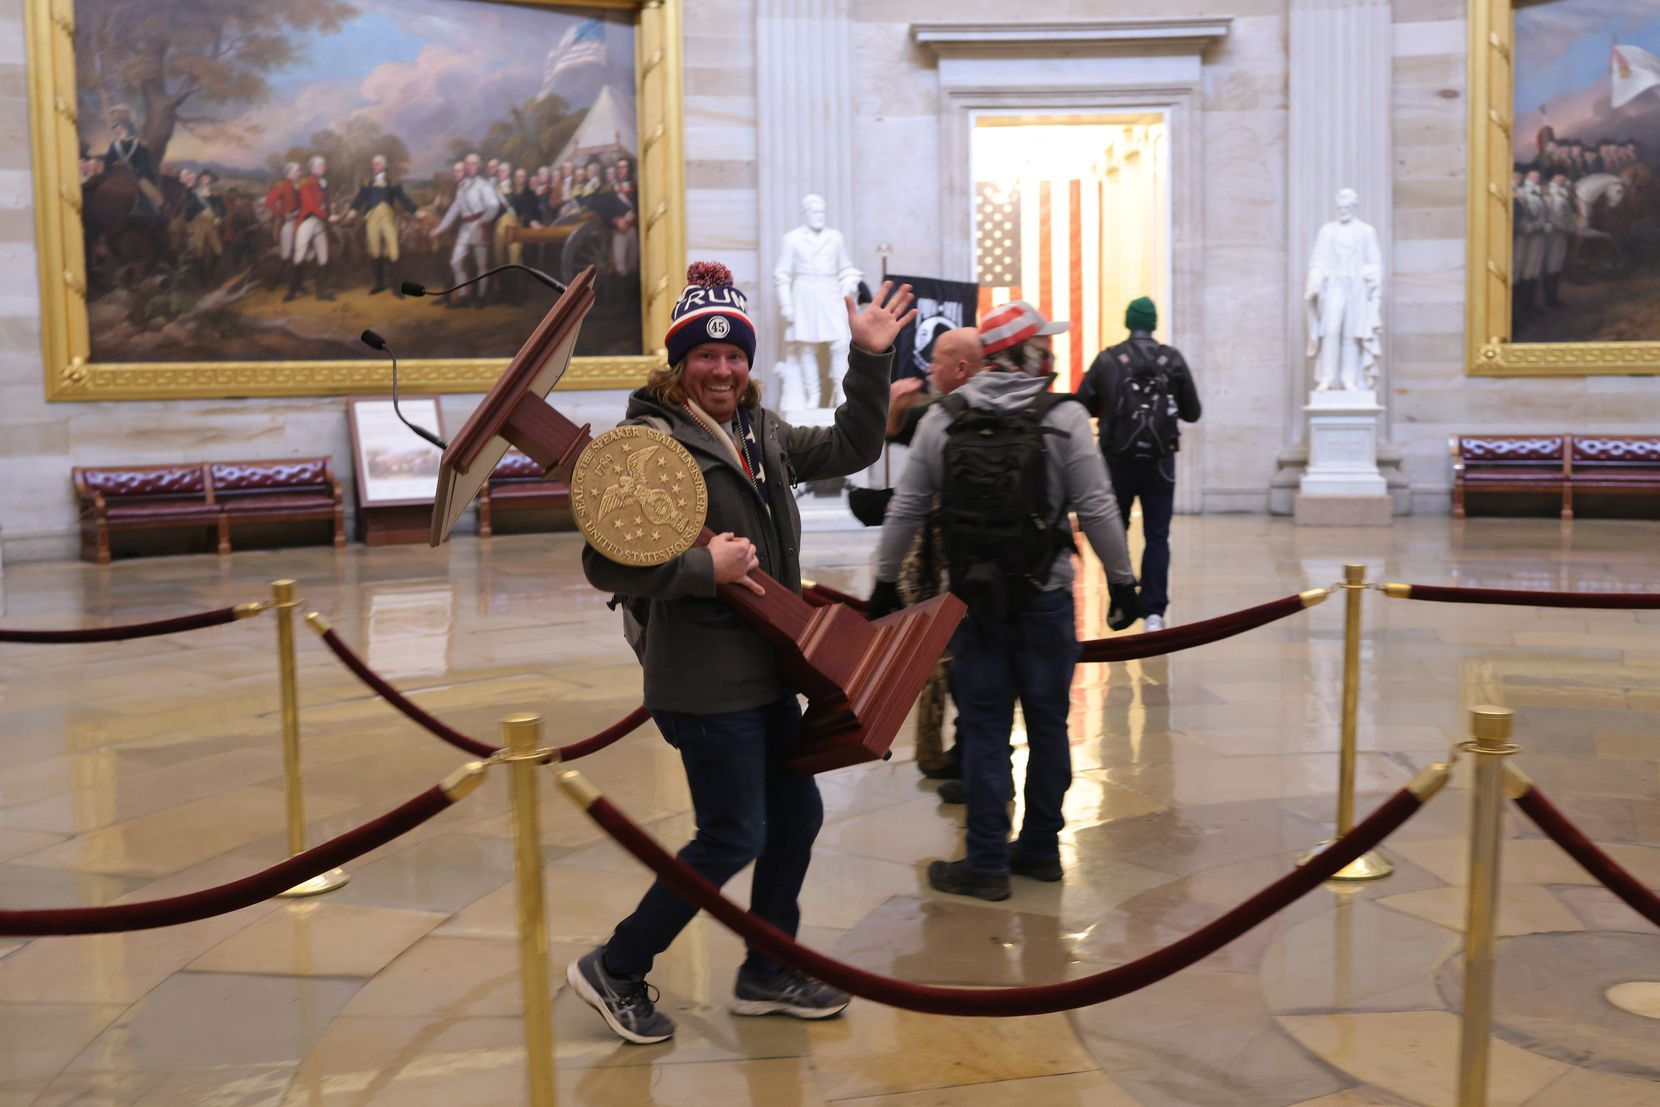 Protesters enter the U.S. Capitol Building on Jan. 6, 2021 in Washington, D.C. Congress held a joint session today to ratify President-elect Joe Biden's 306-232 Electoral College win over President Donald Trump. A group of Republican senators said they would reject the Electoral College votes of several states unless Congress appointed a commission to audit the election results. (Win McNamee/Getty Images/TNS)